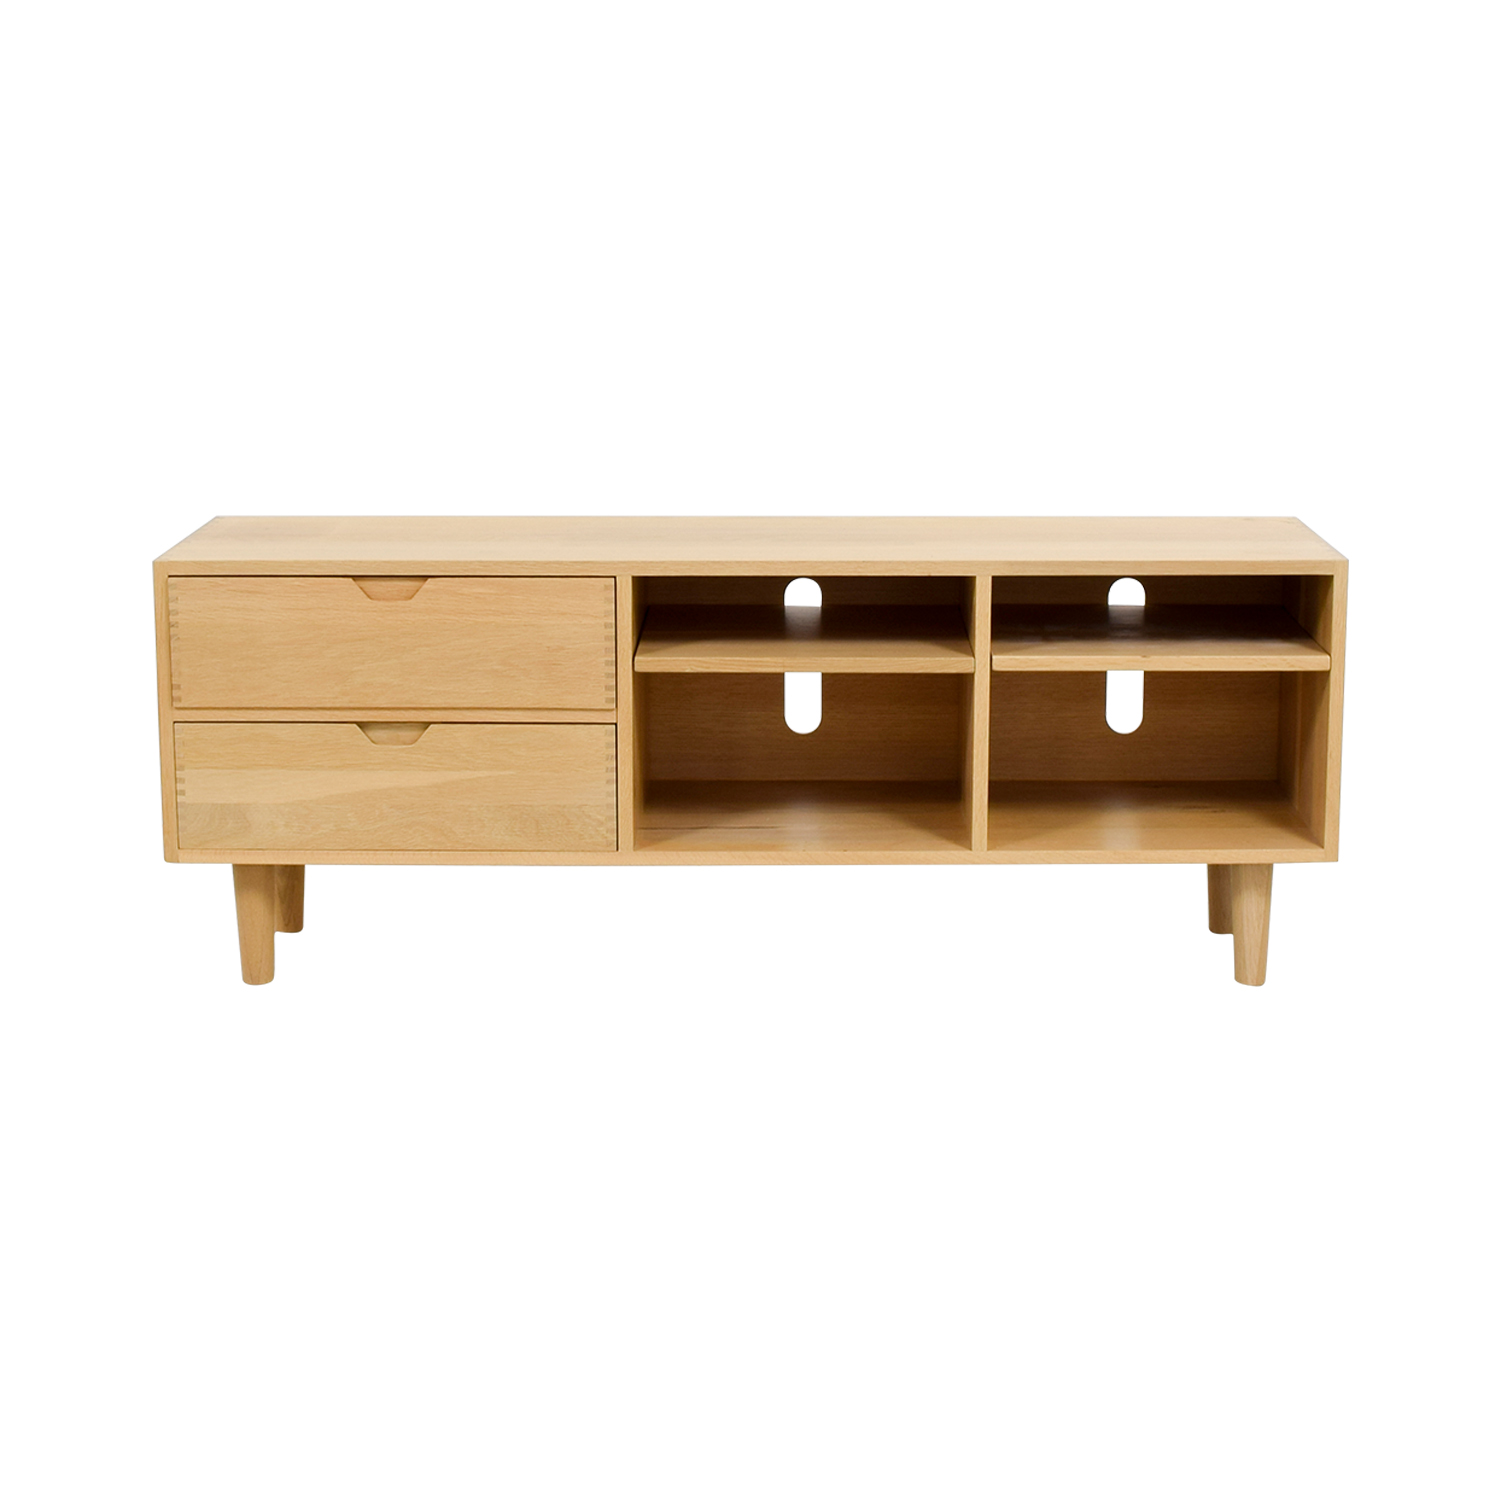 The Conran Shop Media Console The Conran Shop for ABC Home